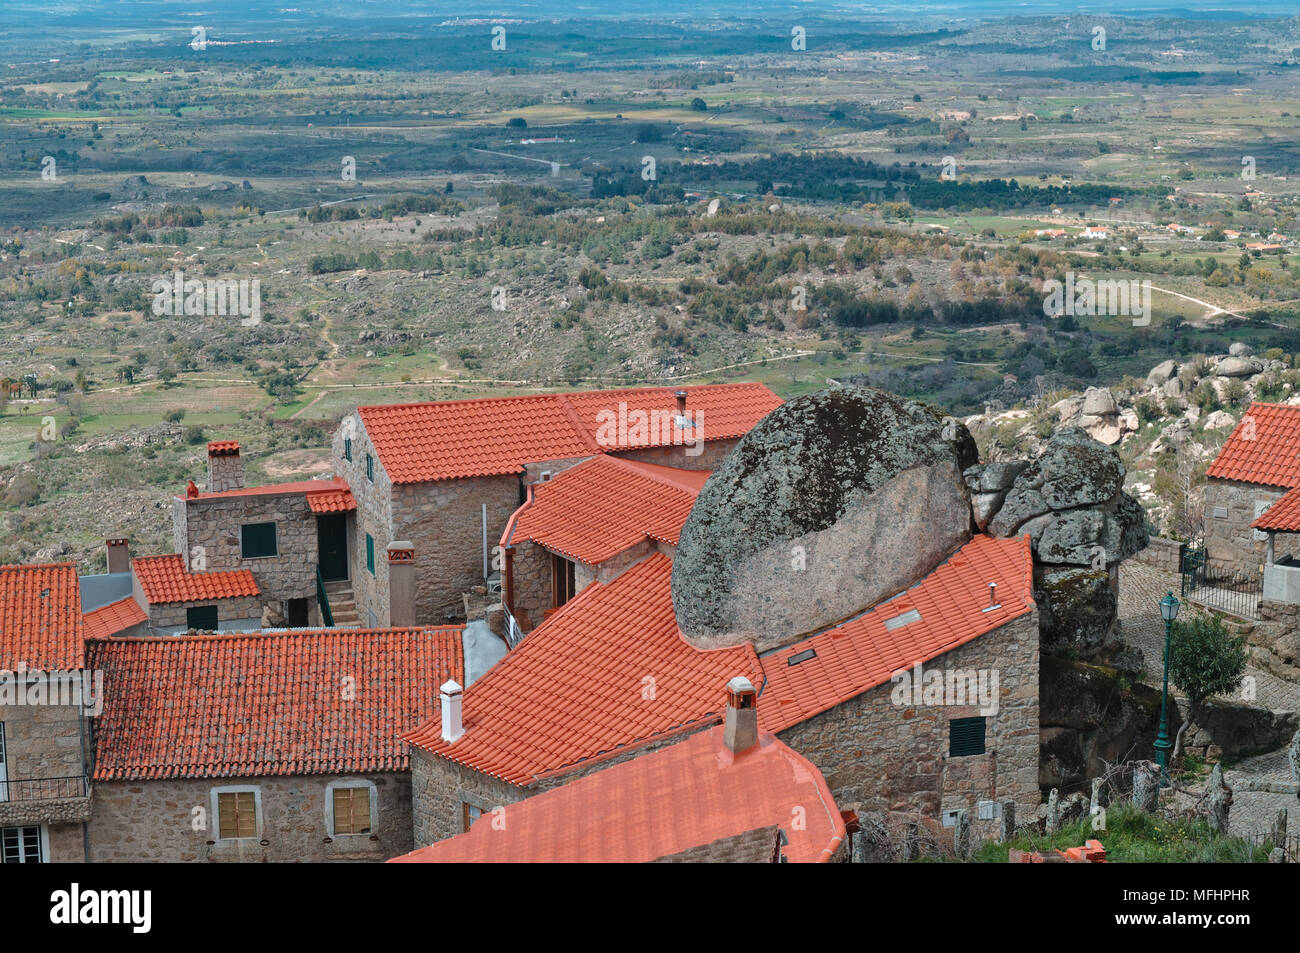 Monsanto village overview. Portugal Stock Photo